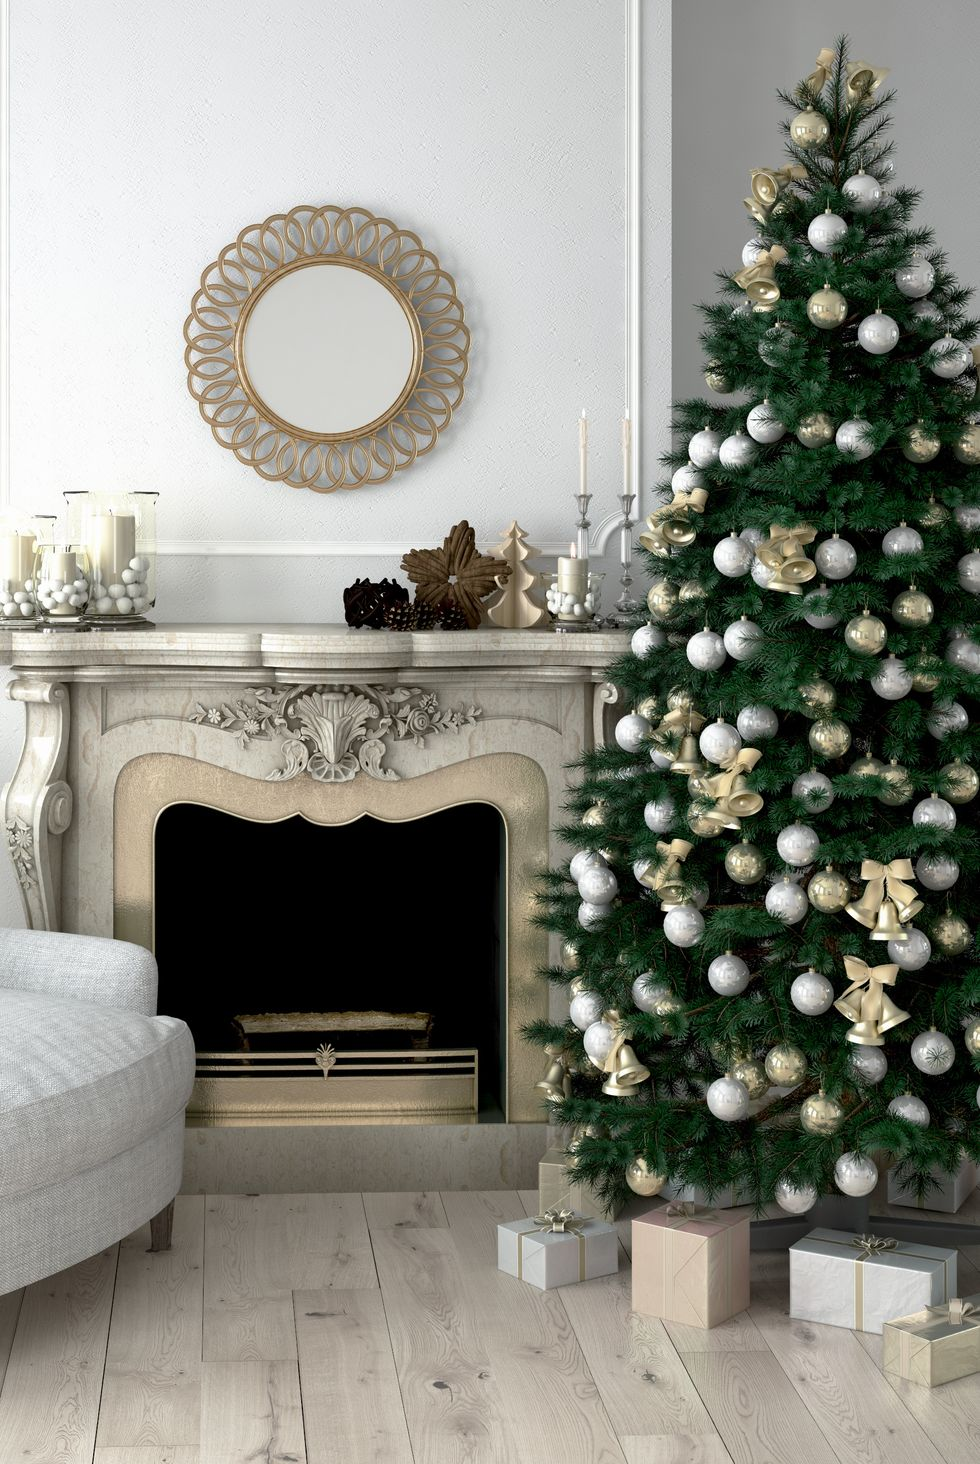 Found The Best Christmas Living Room Decor Ideas in 2020